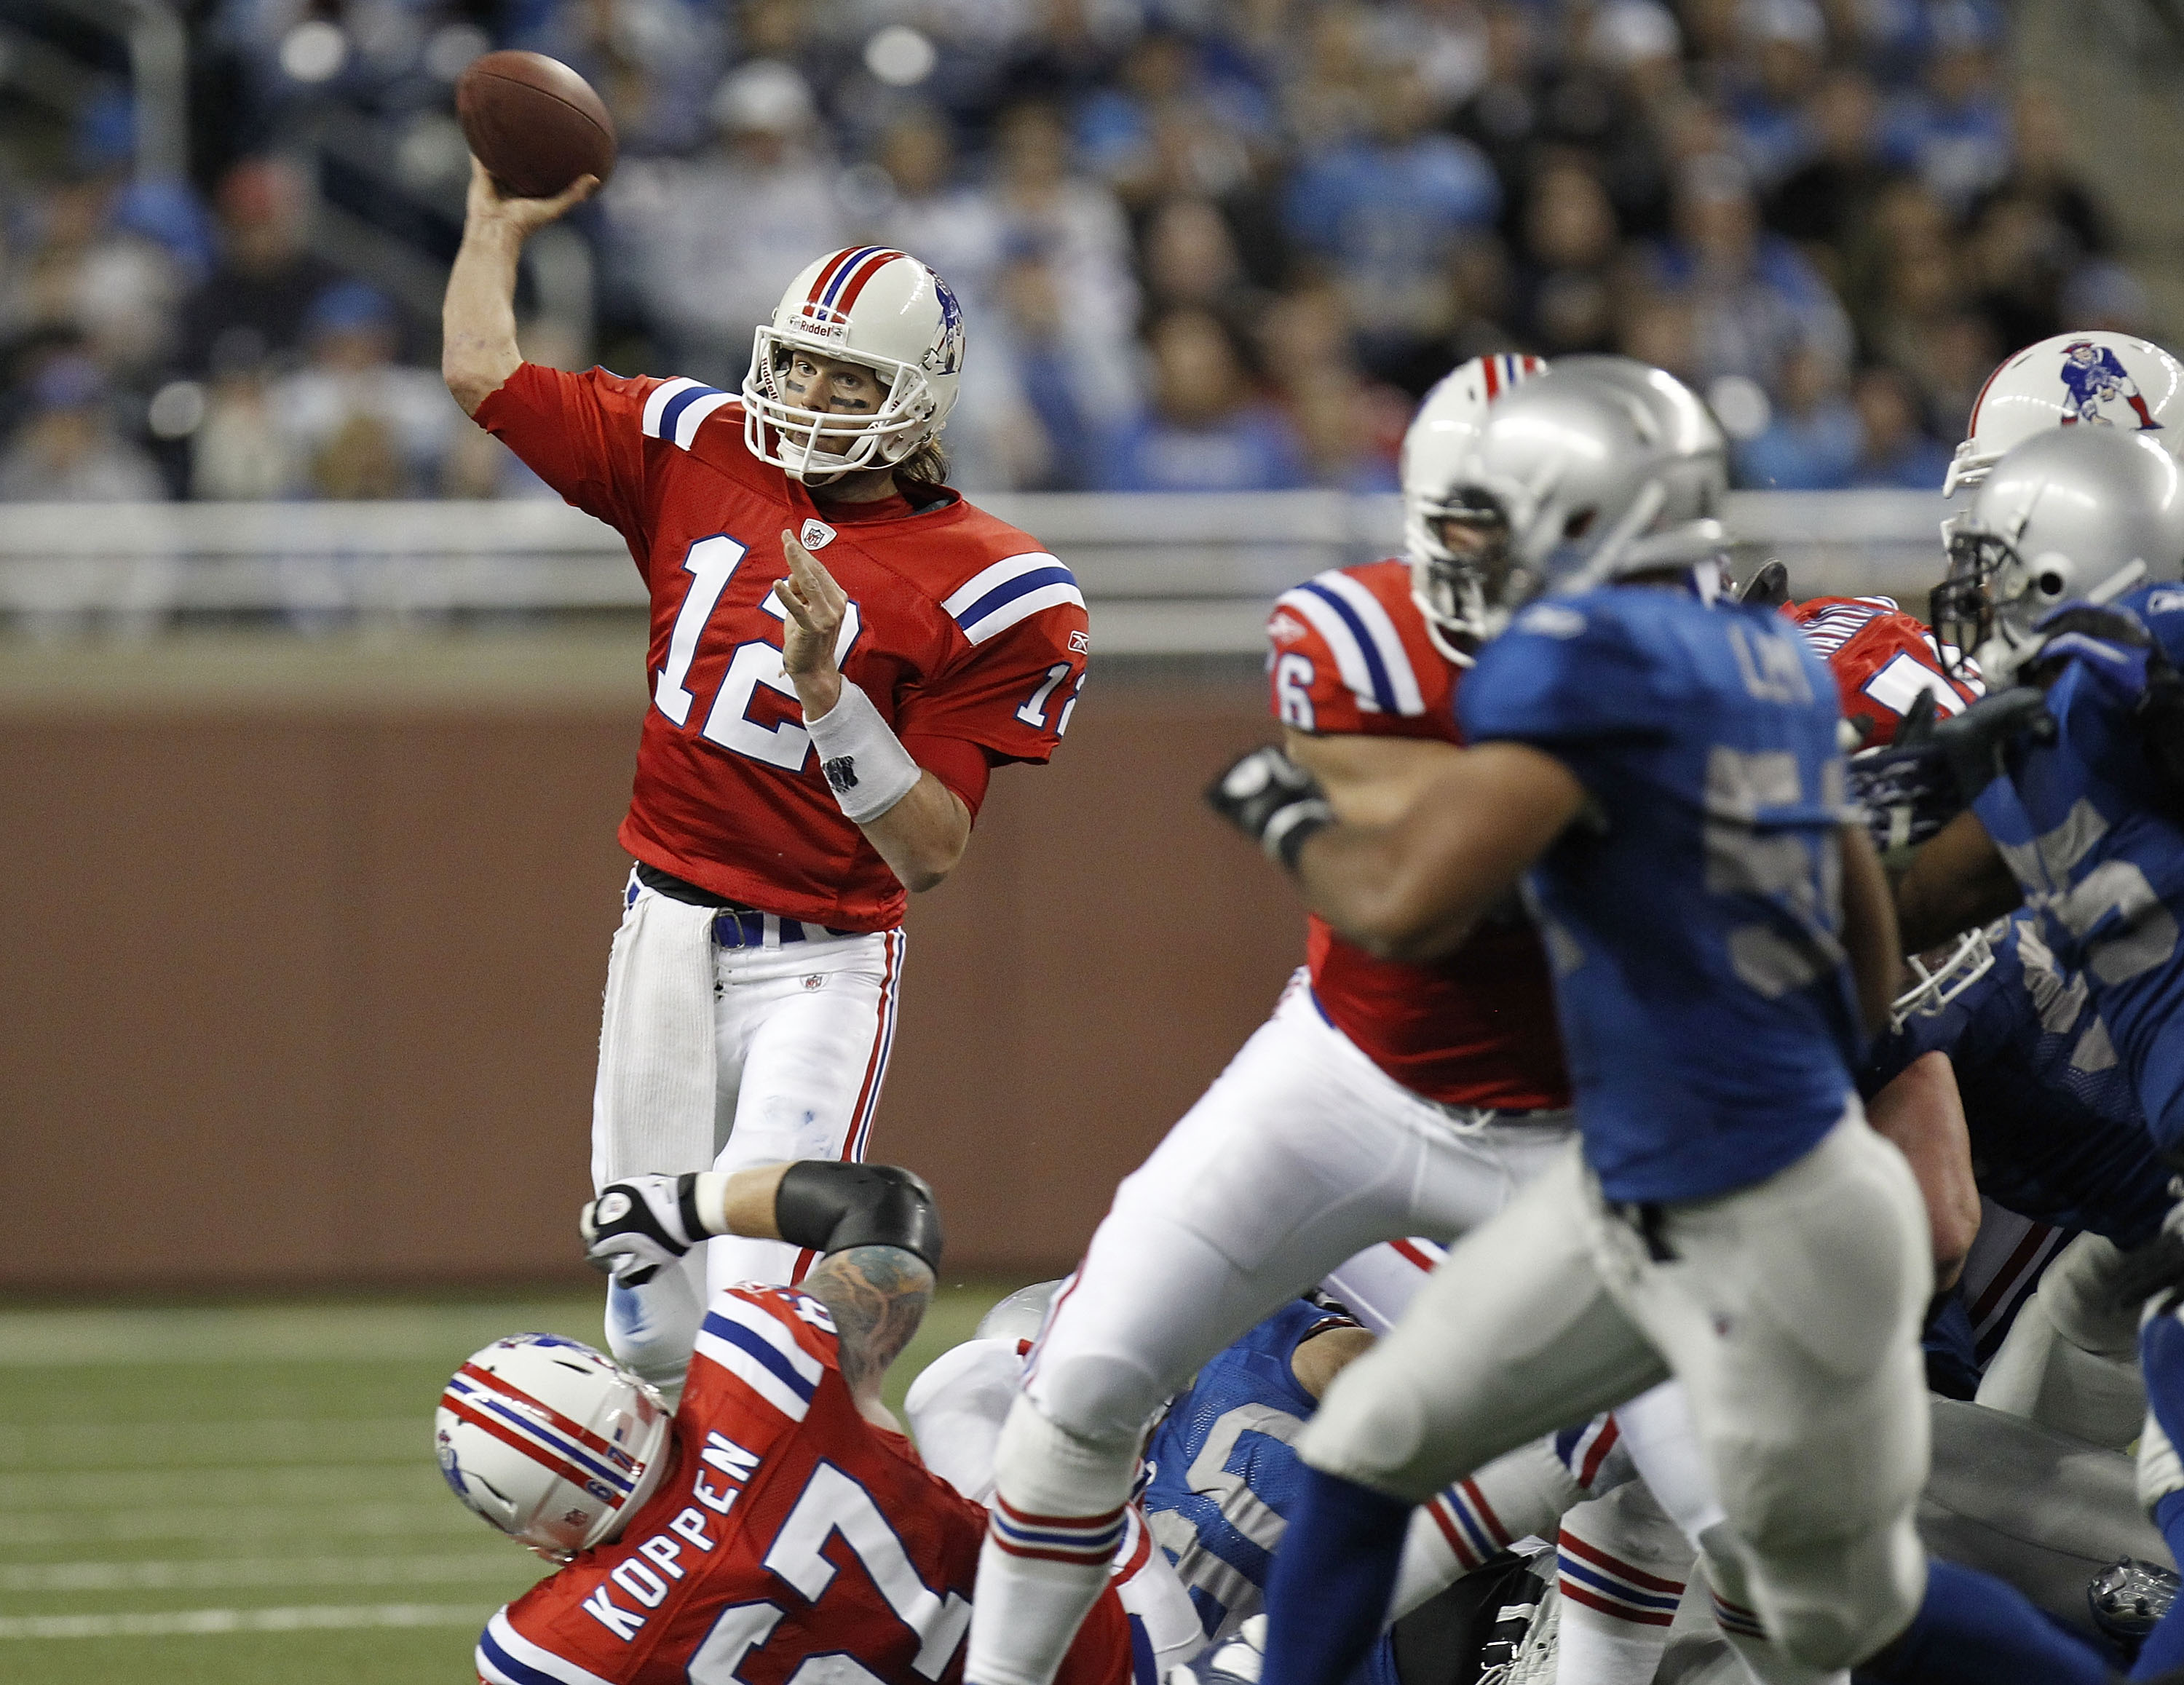 DETROIT - NOVEMBER 25:  Tom Brady #12 of the New England Patriots throws a second quarter pass while playing the Detroit Lions on November 25, 2010 at Ford Field in Detroit, Michigan.  (Photo by Gregory Shamus/Getty Images)